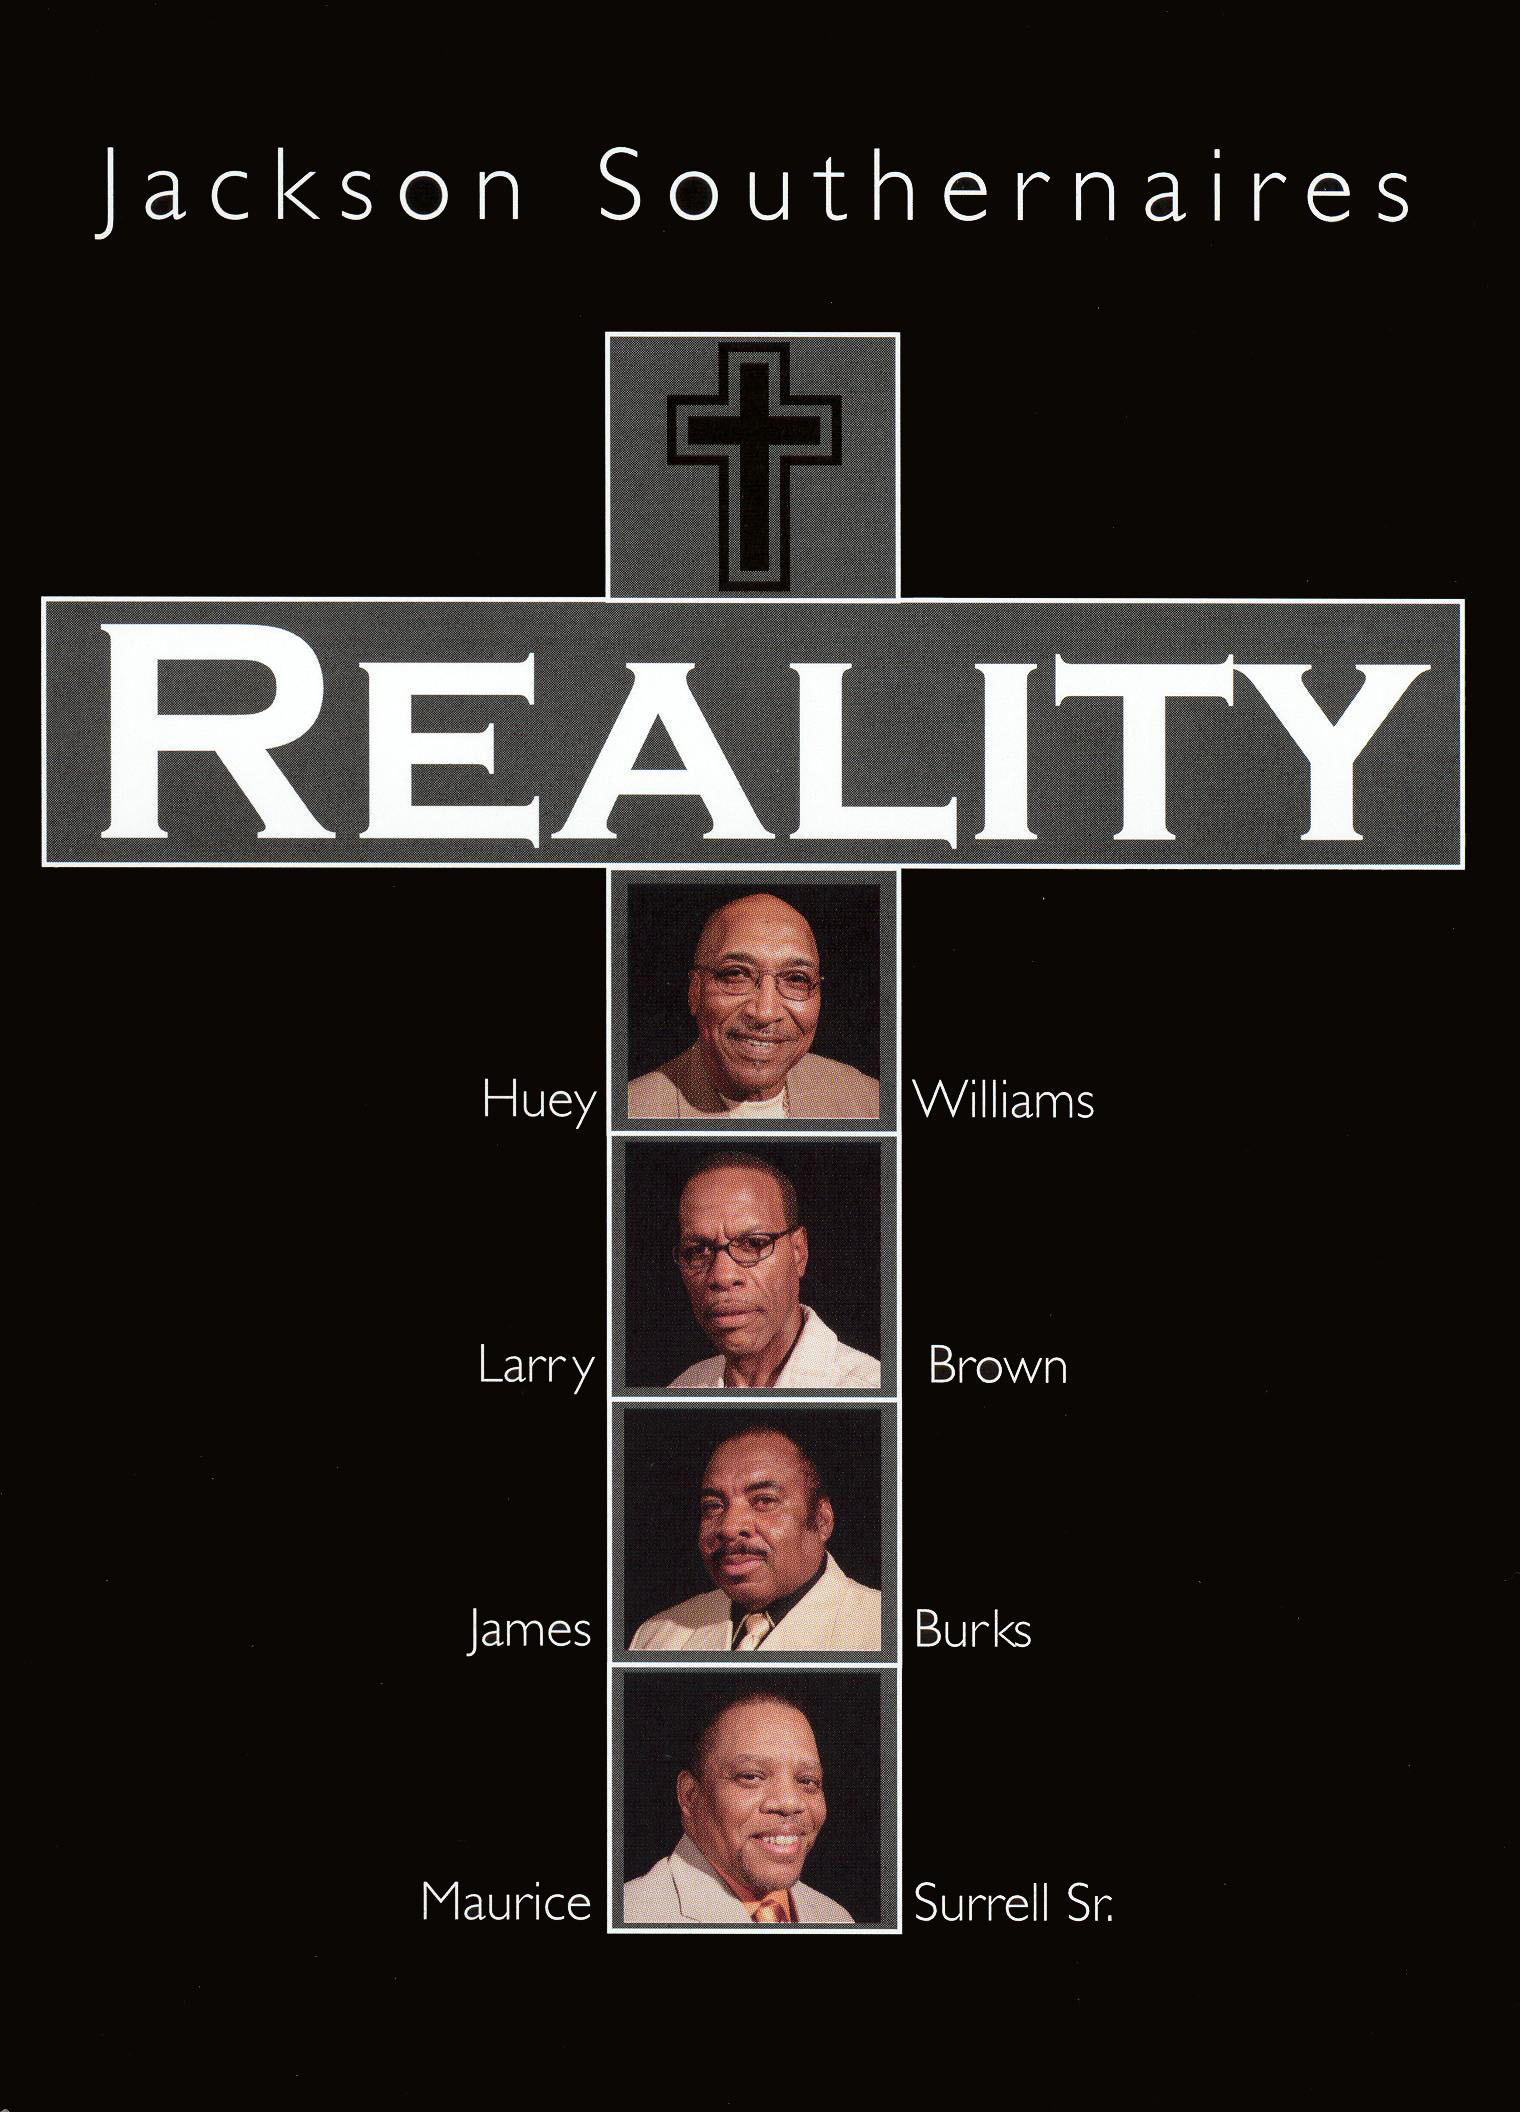 The Jackson Southernaires: Reality